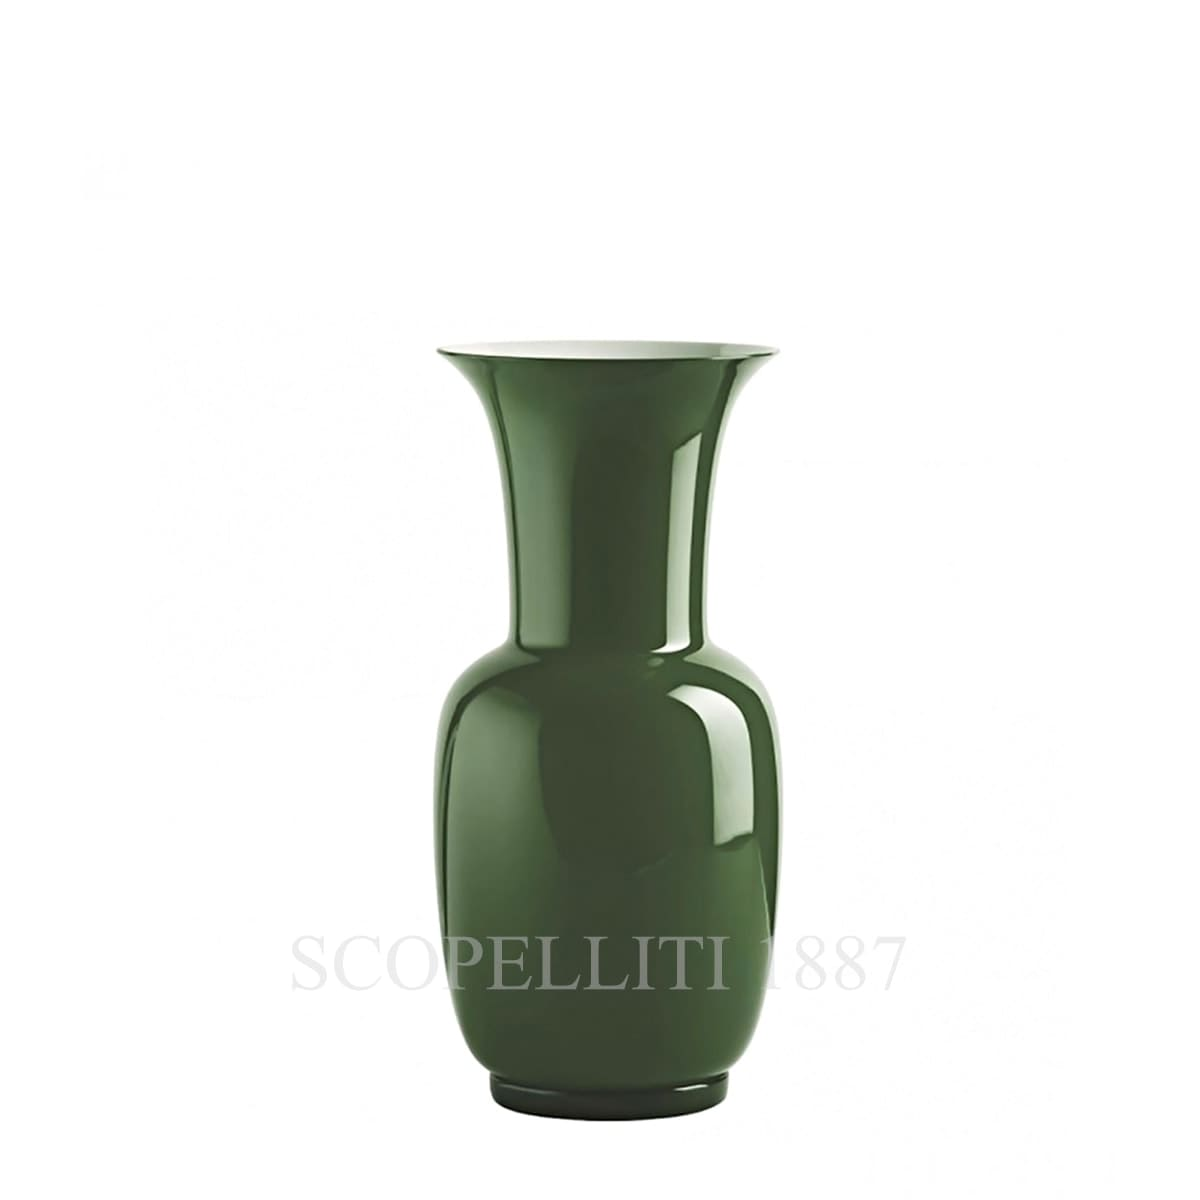 Venini Opalino Vase small apple green 706.38